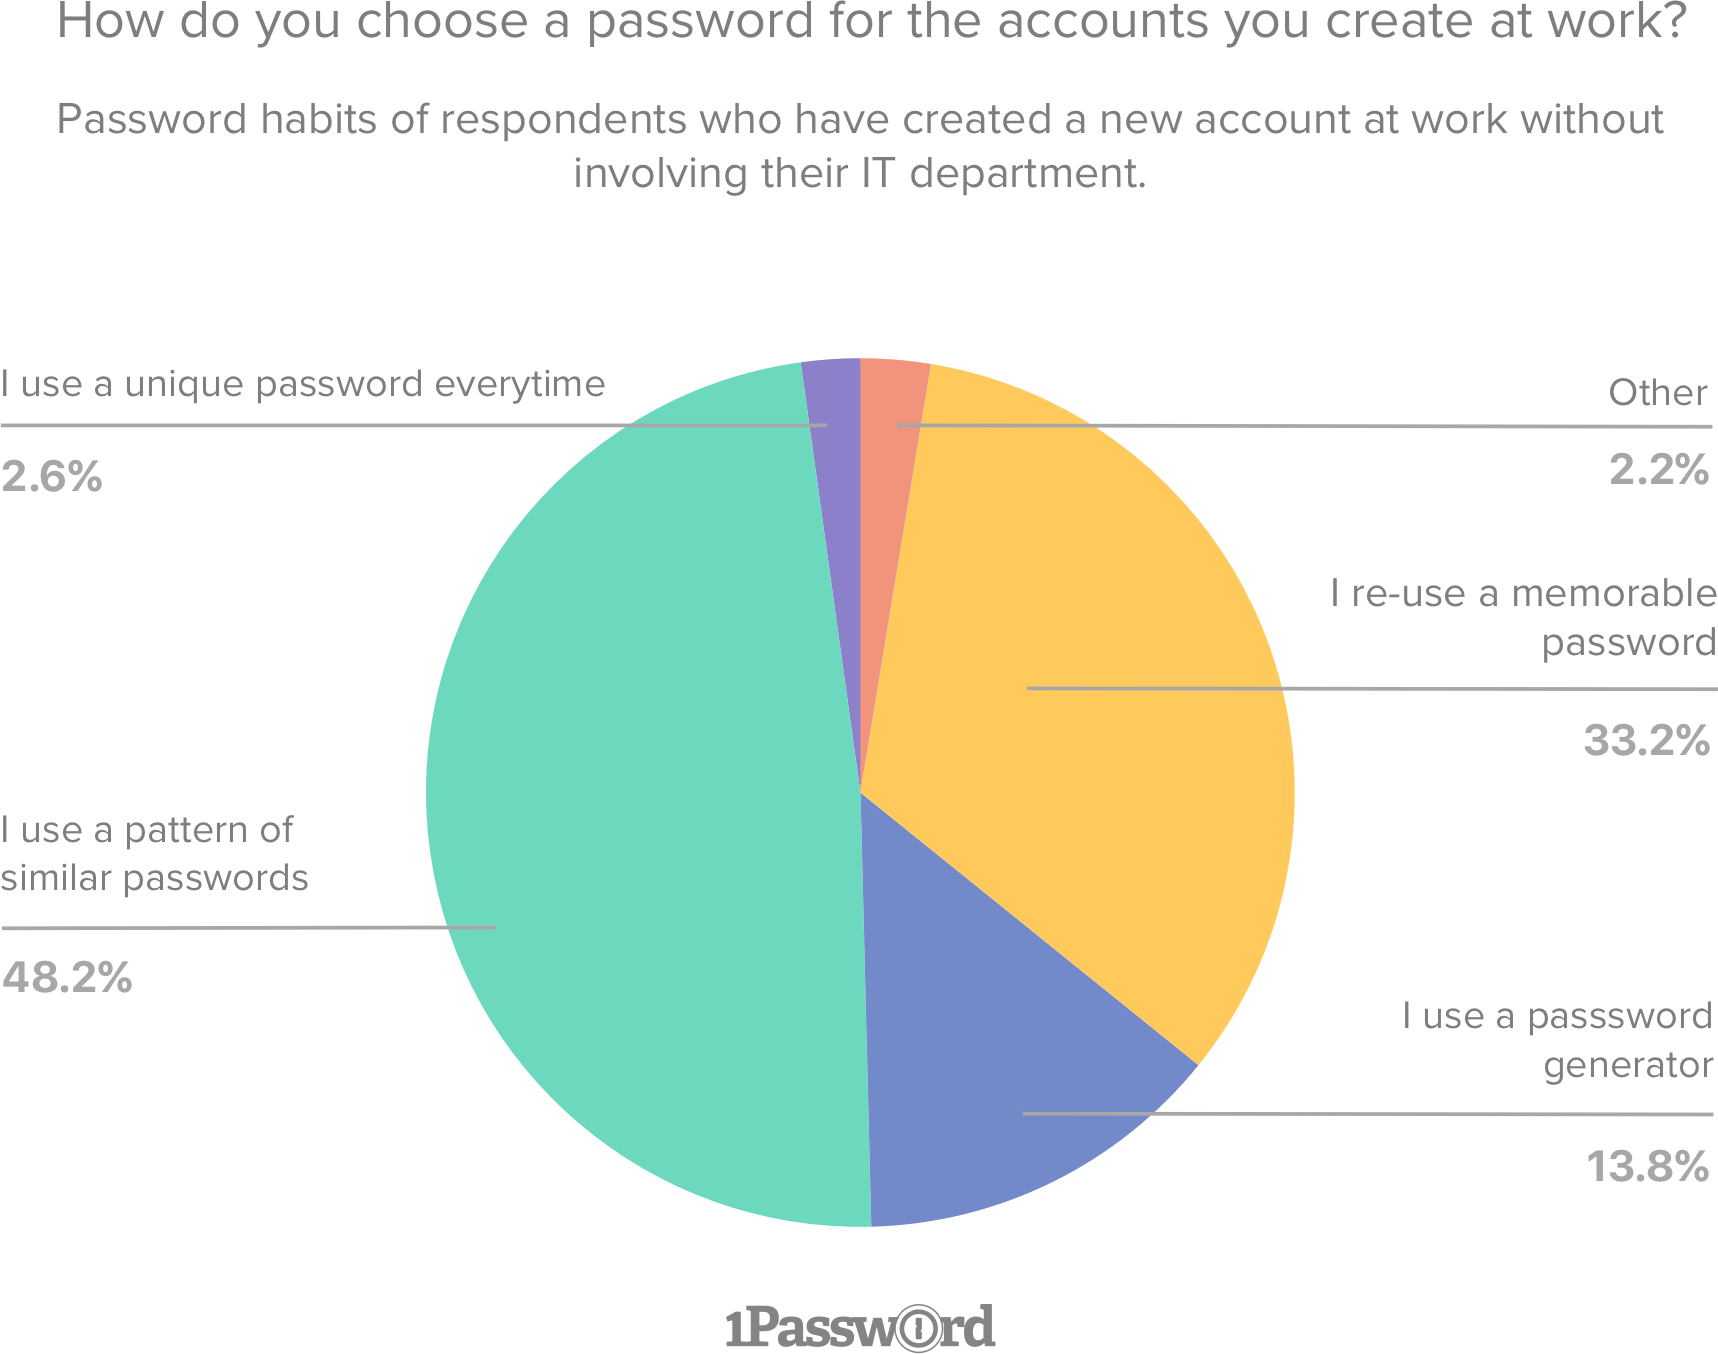 Graph illustrating password habits